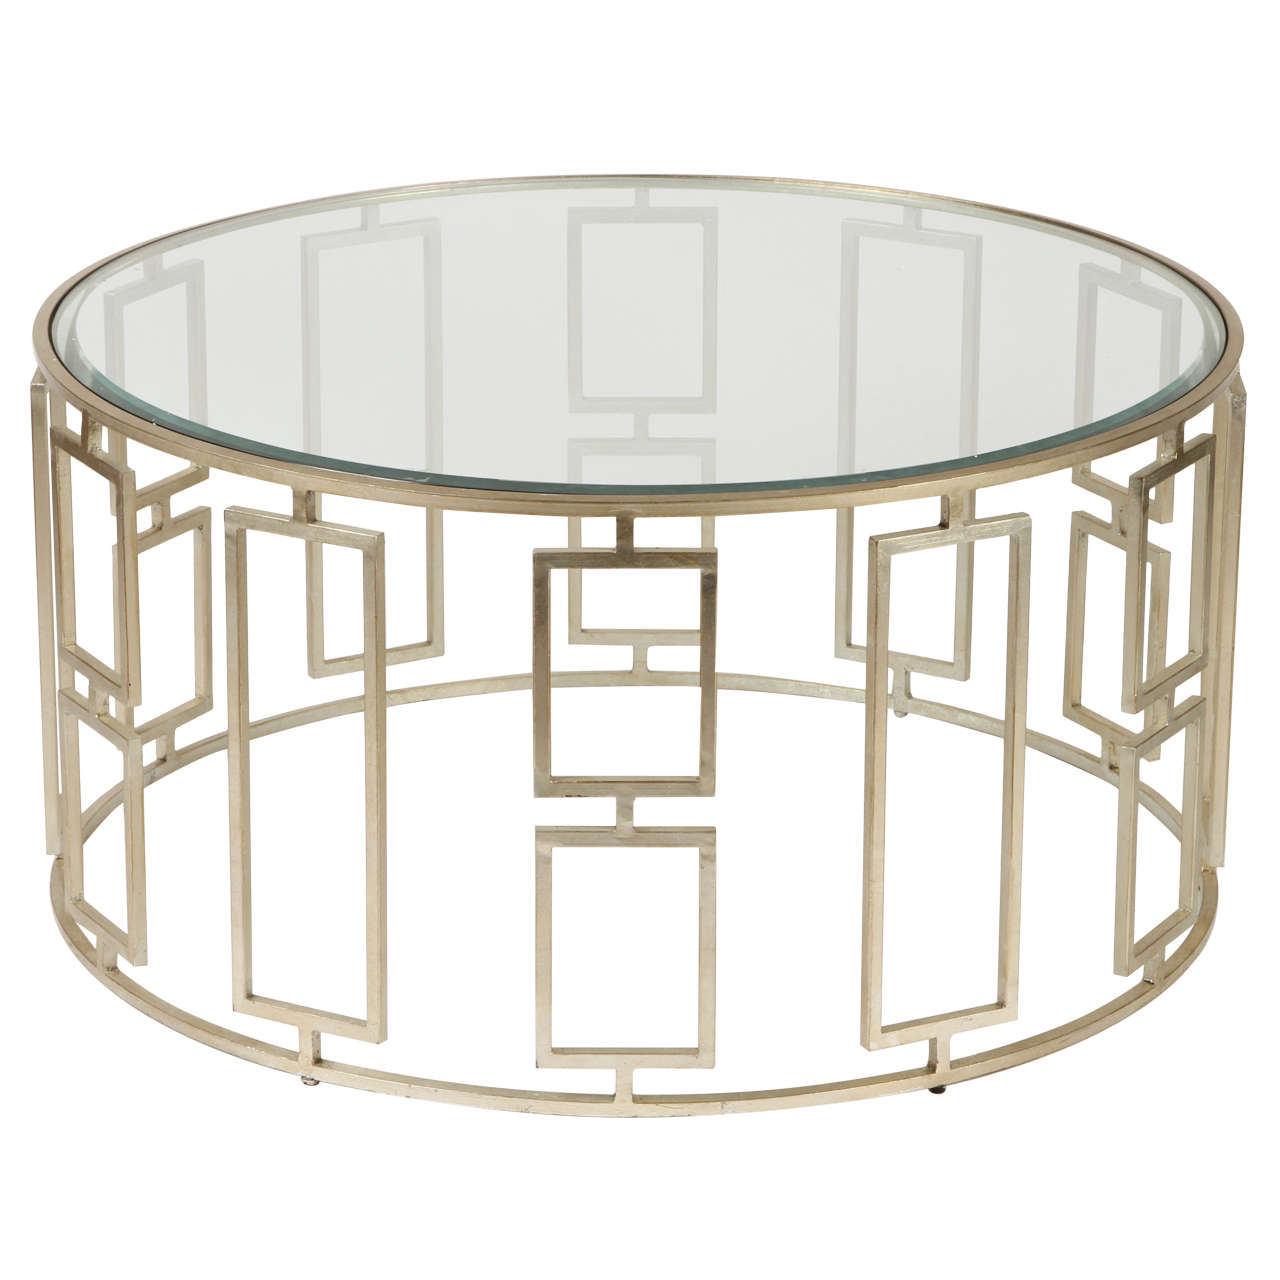 Silver Studded Coffee Table: Contemporary Silver-Leafed Coffee Table For Sale At 1stdibs